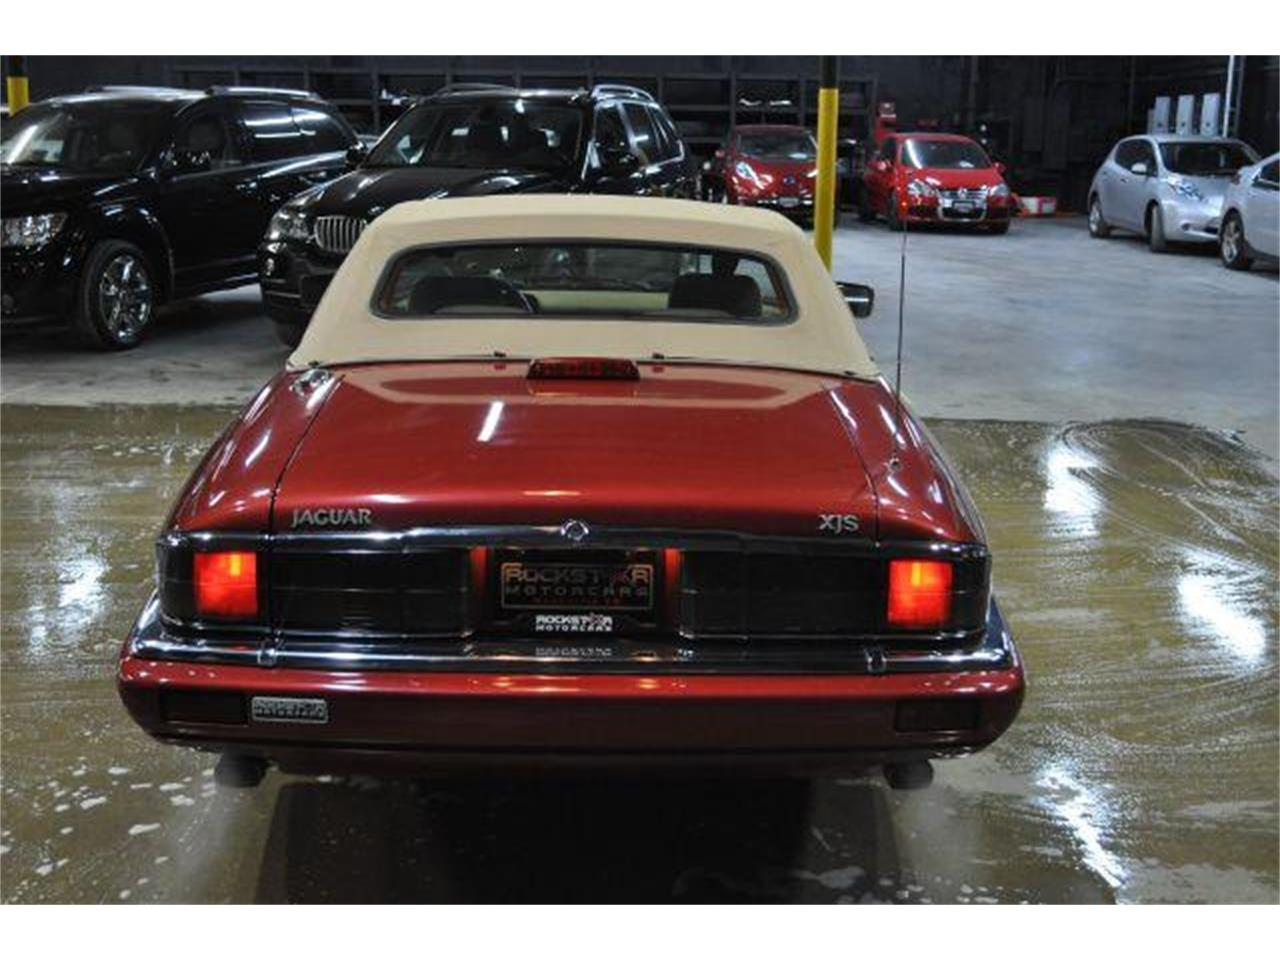 Large Picture of '94 Jaguar XJS located in Nashville Tennessee - $7,995.00 - G84N